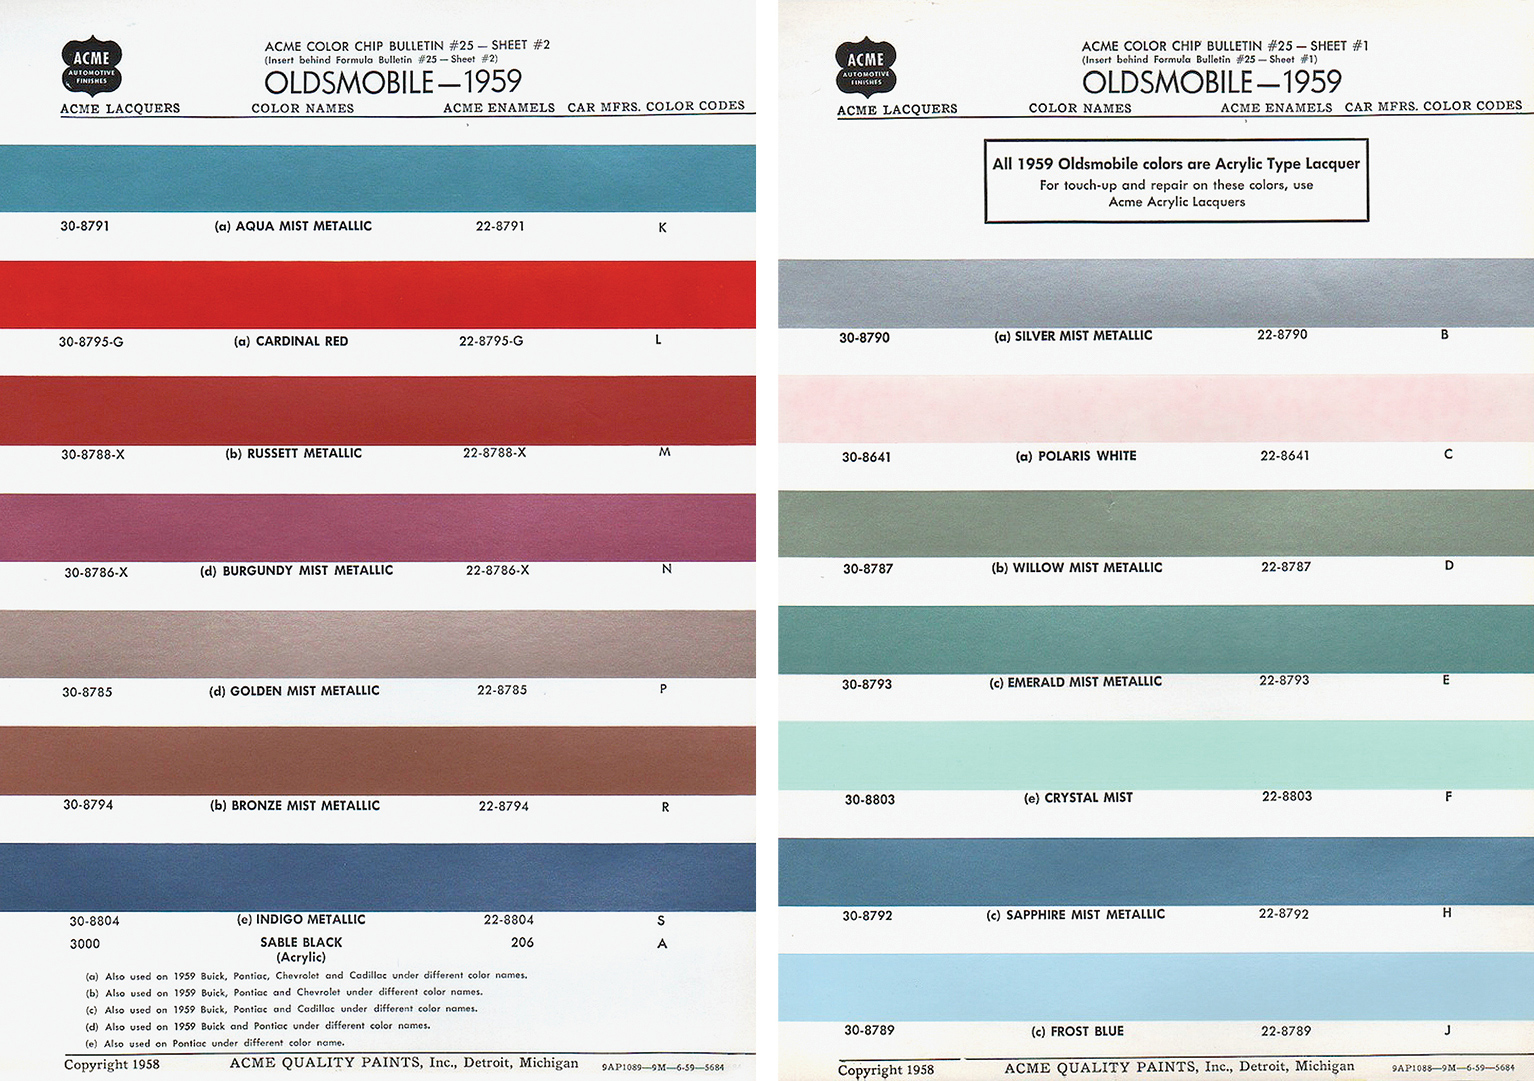 Co color cardinal red - The 59 Oldsmobile Colors Were Widely Used By Gibson As Seen In These Charts Listing Silver Mist Polaris White Frost Blue Cardinal Red And Golden Mist